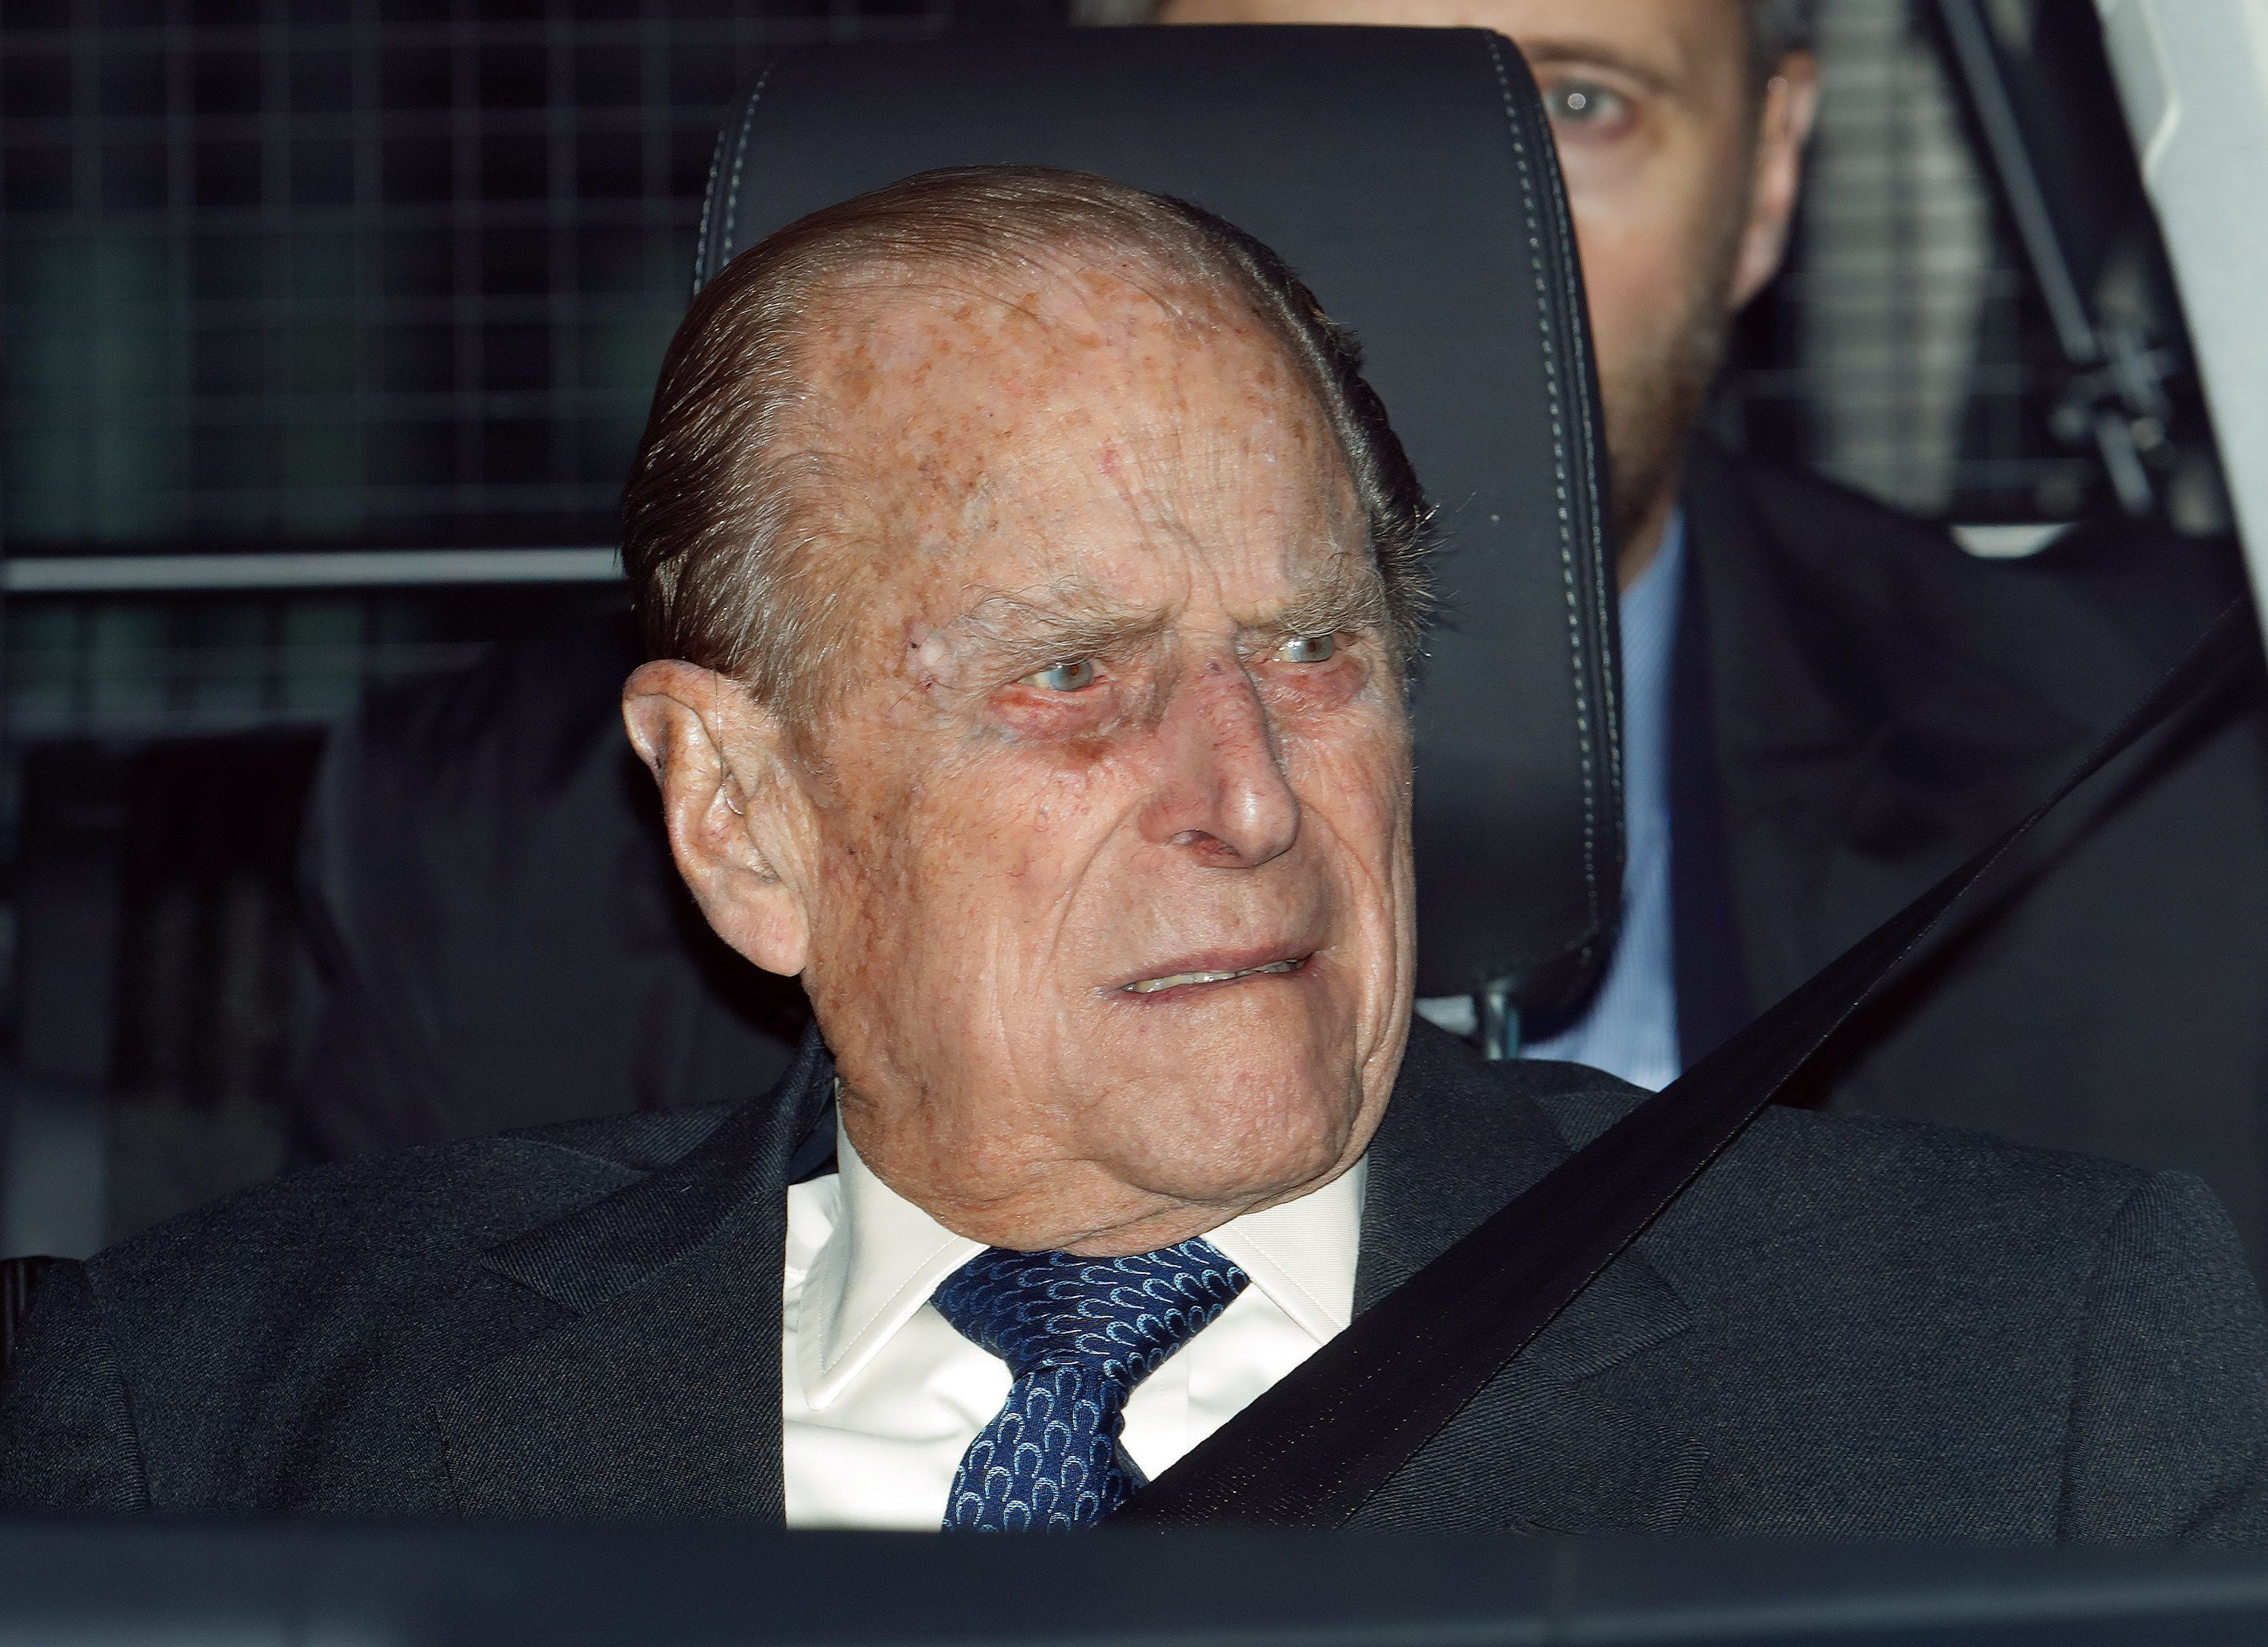 Prince Philip gives up driving licence